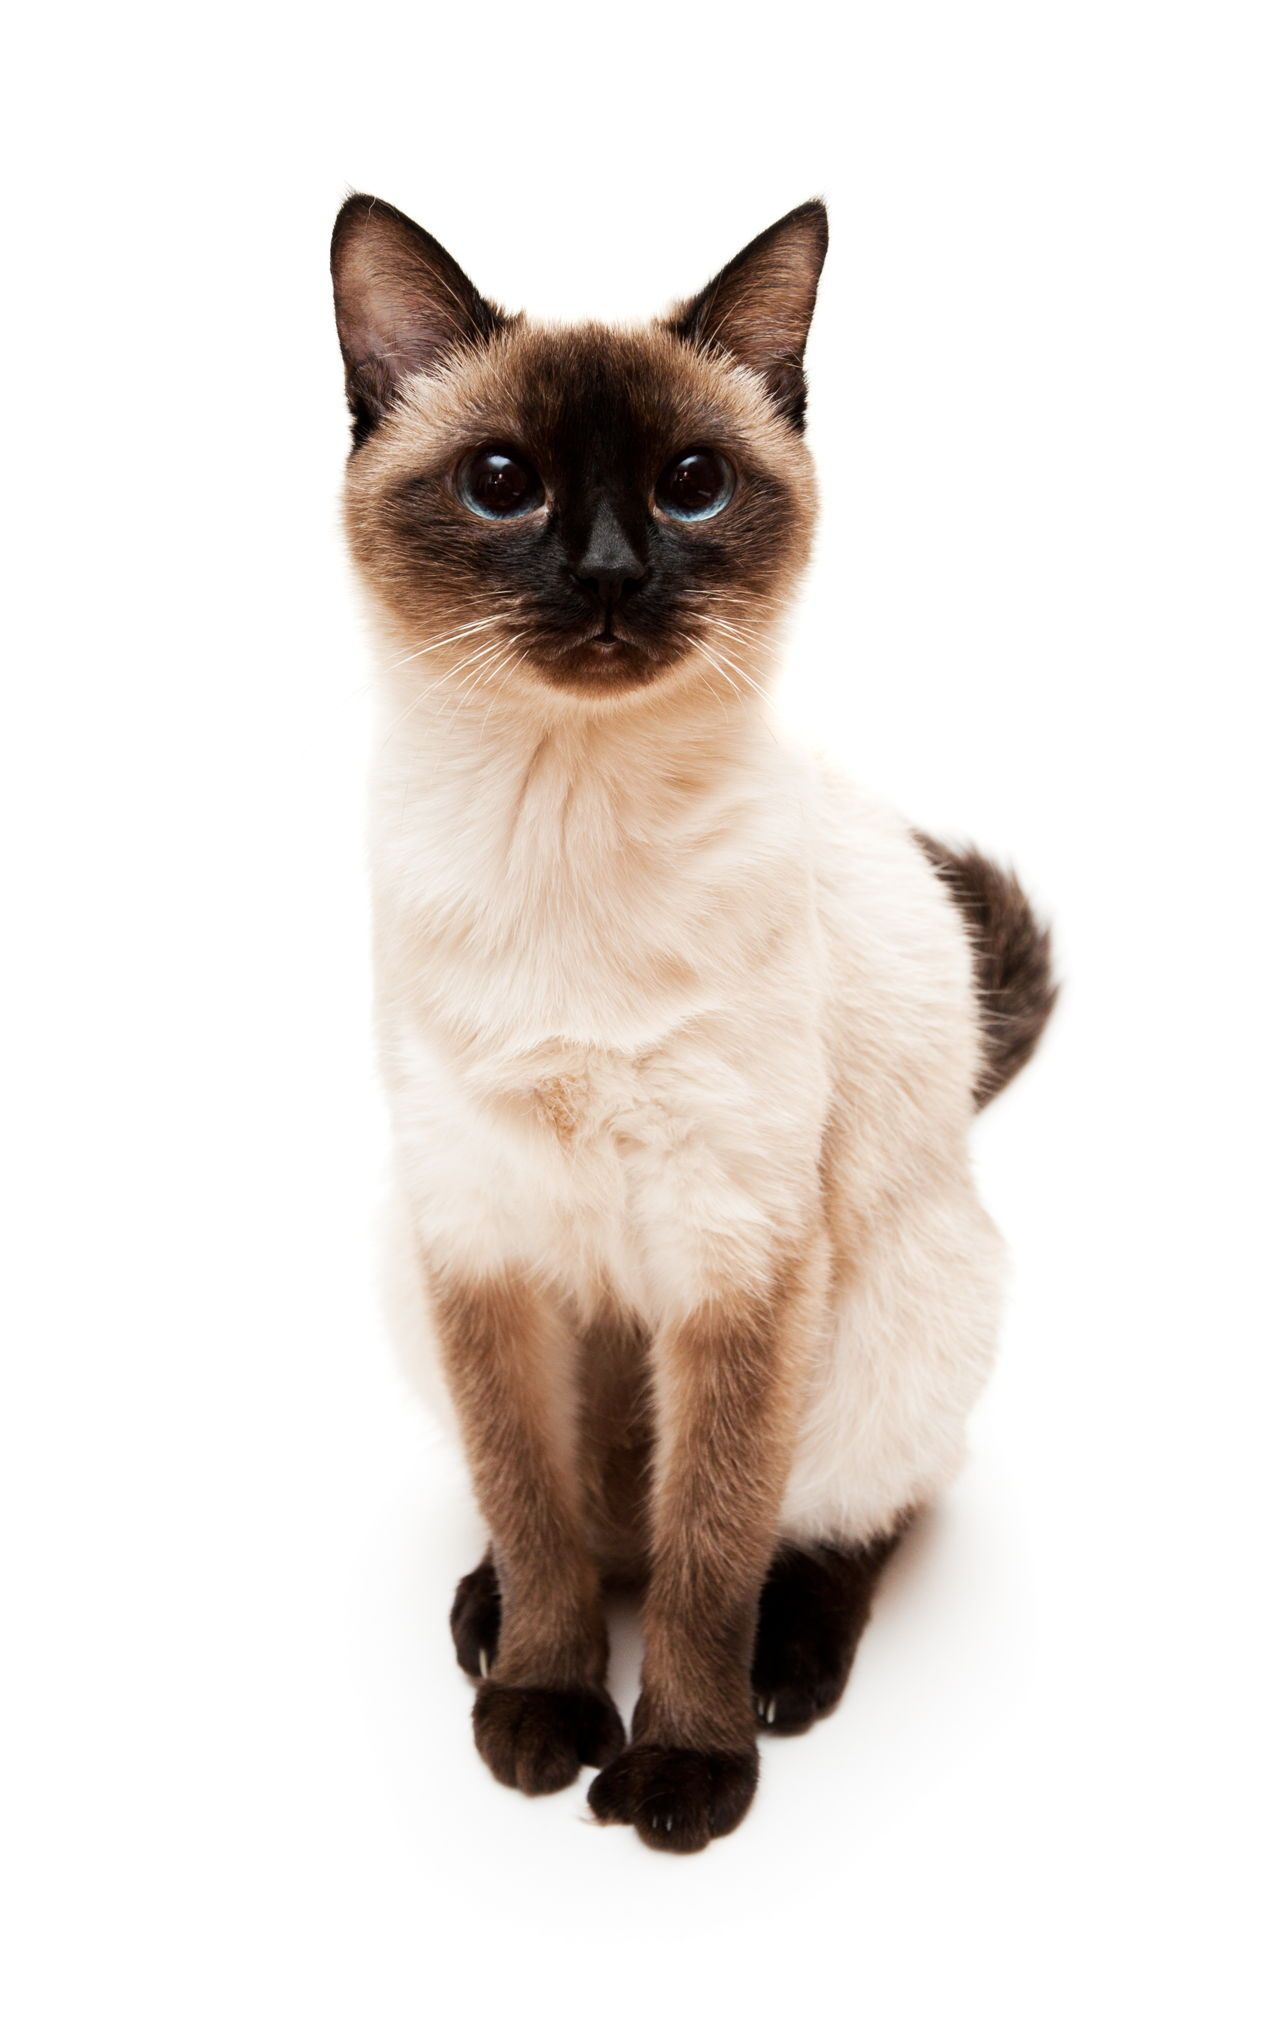 Check Out the Distinct Personality of the Snowshoe Siamese